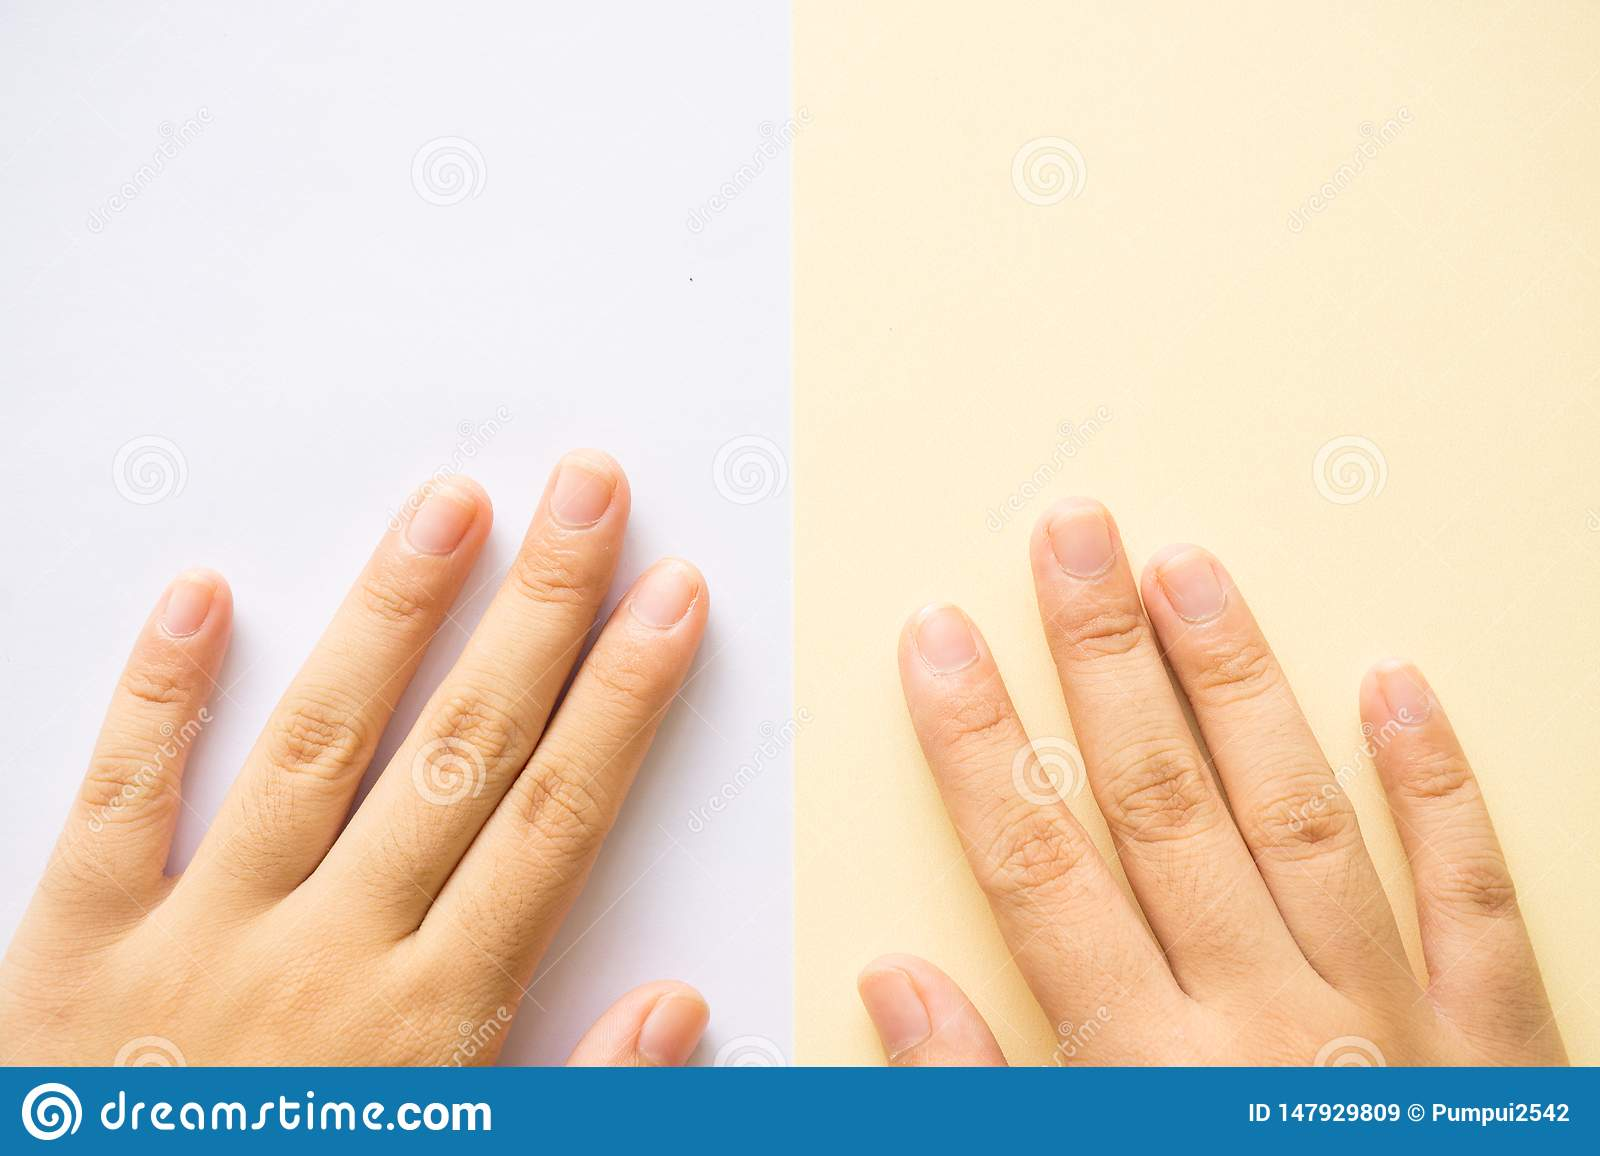 Hand on white background and Yellow background